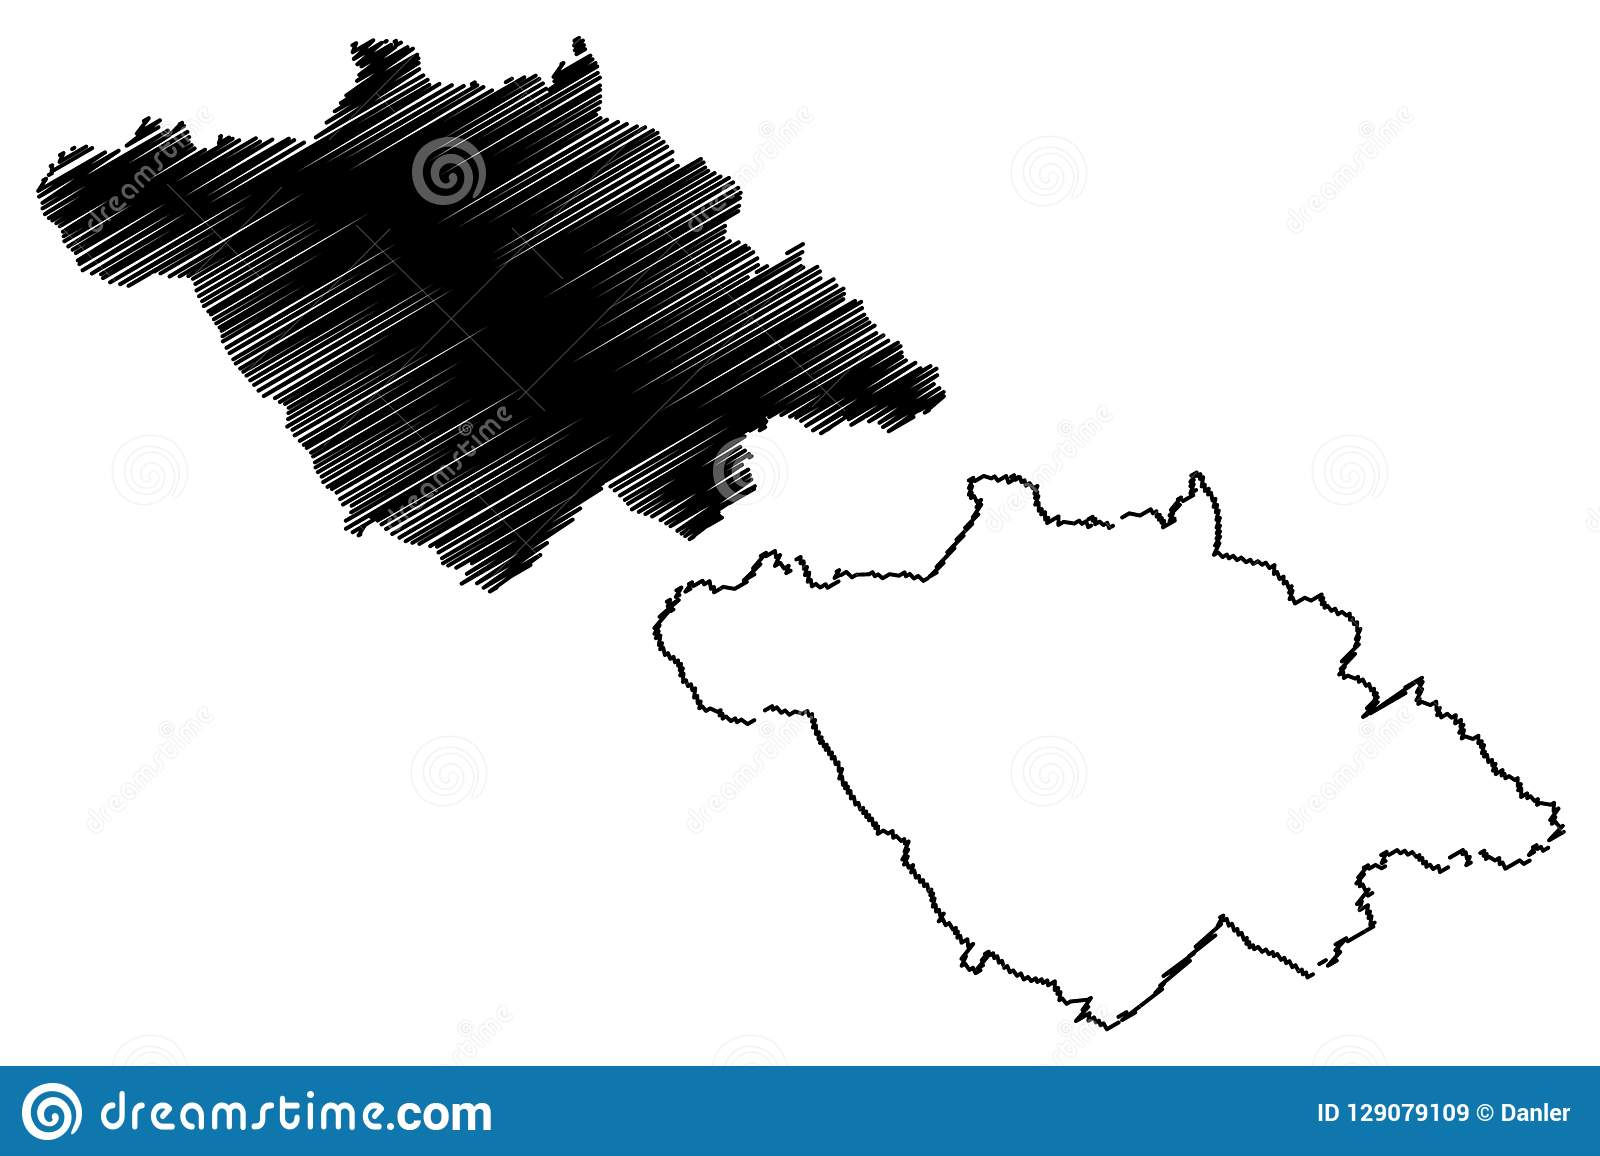 Tlaxcala Map Vector Stock Vector Illustration Of Geography 129079109